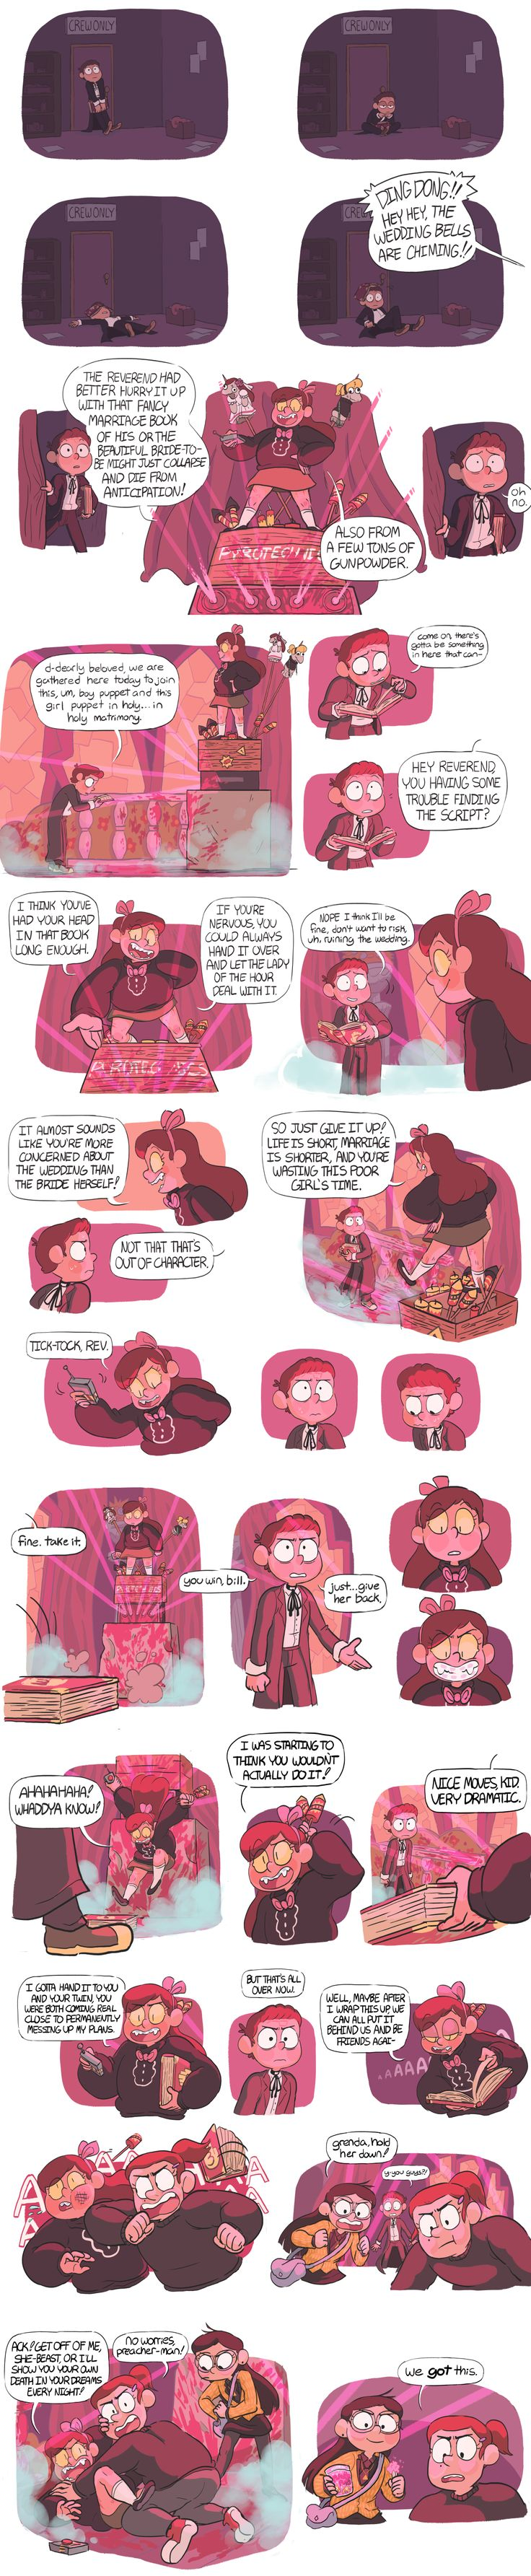 Reunion Falls AU - Sock Opera [6/7] If Cypher had possessed Mabel instead of Dipper